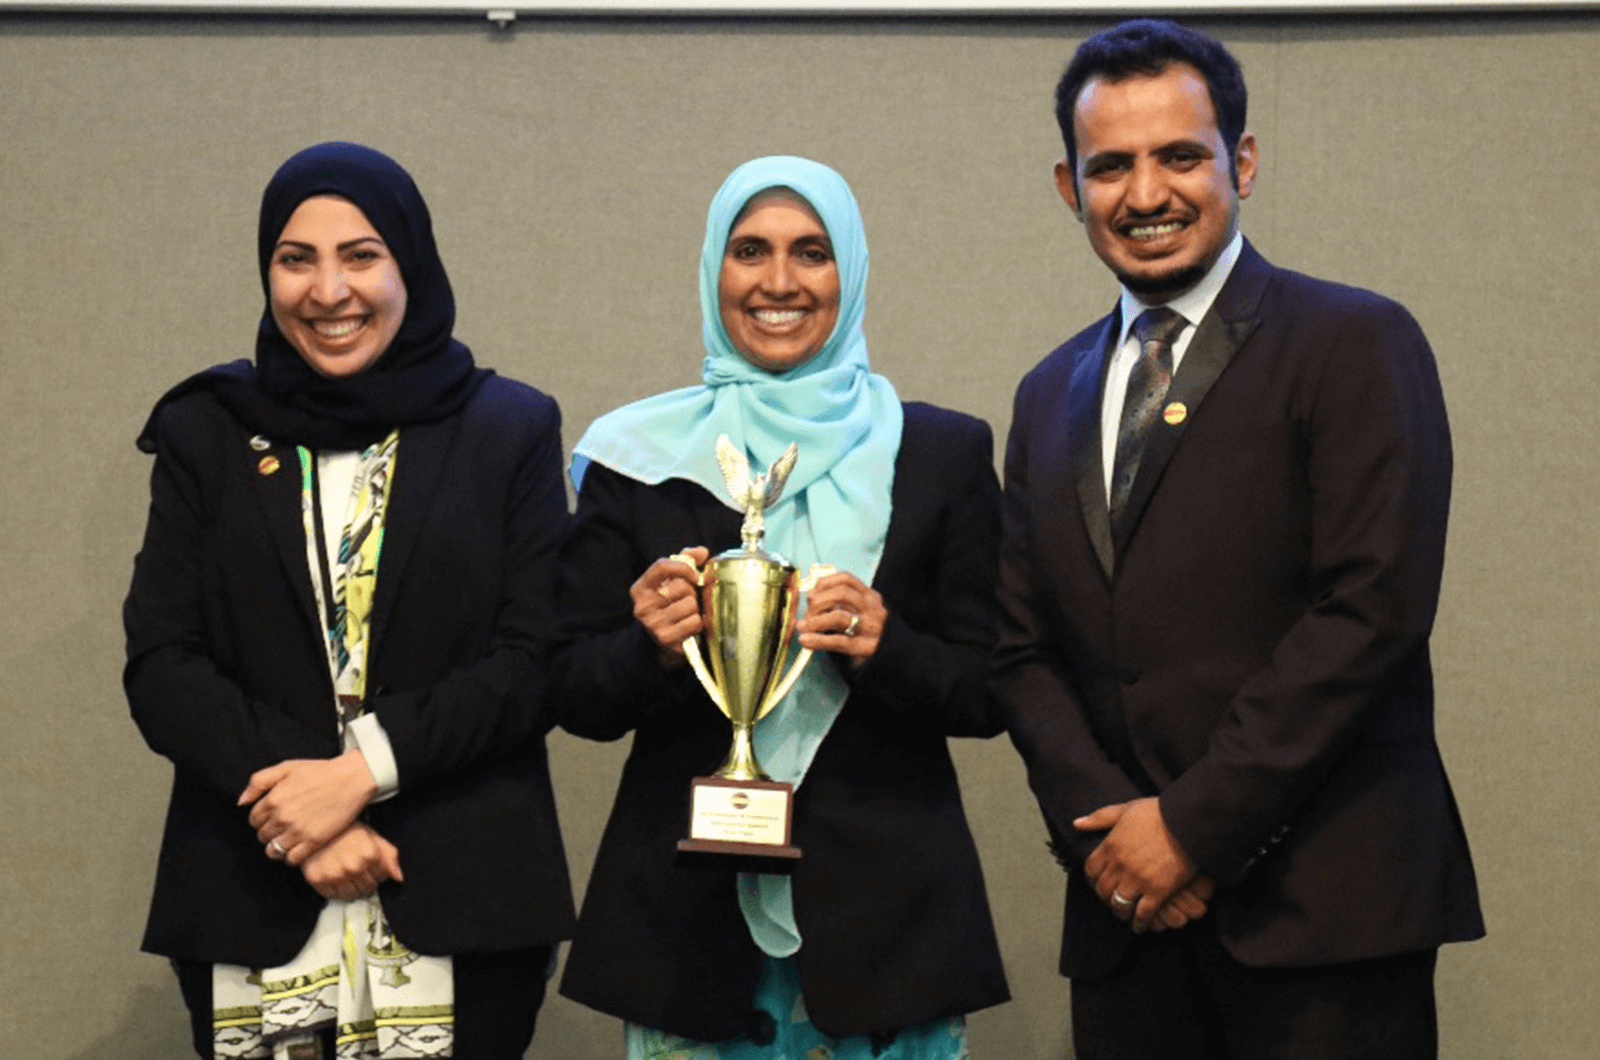 Bilquis proudly holds up a trophy while standing next to 2015 World Champion of Public Speaking Mohammed Qahtani in Saudi Arabia in 2018.